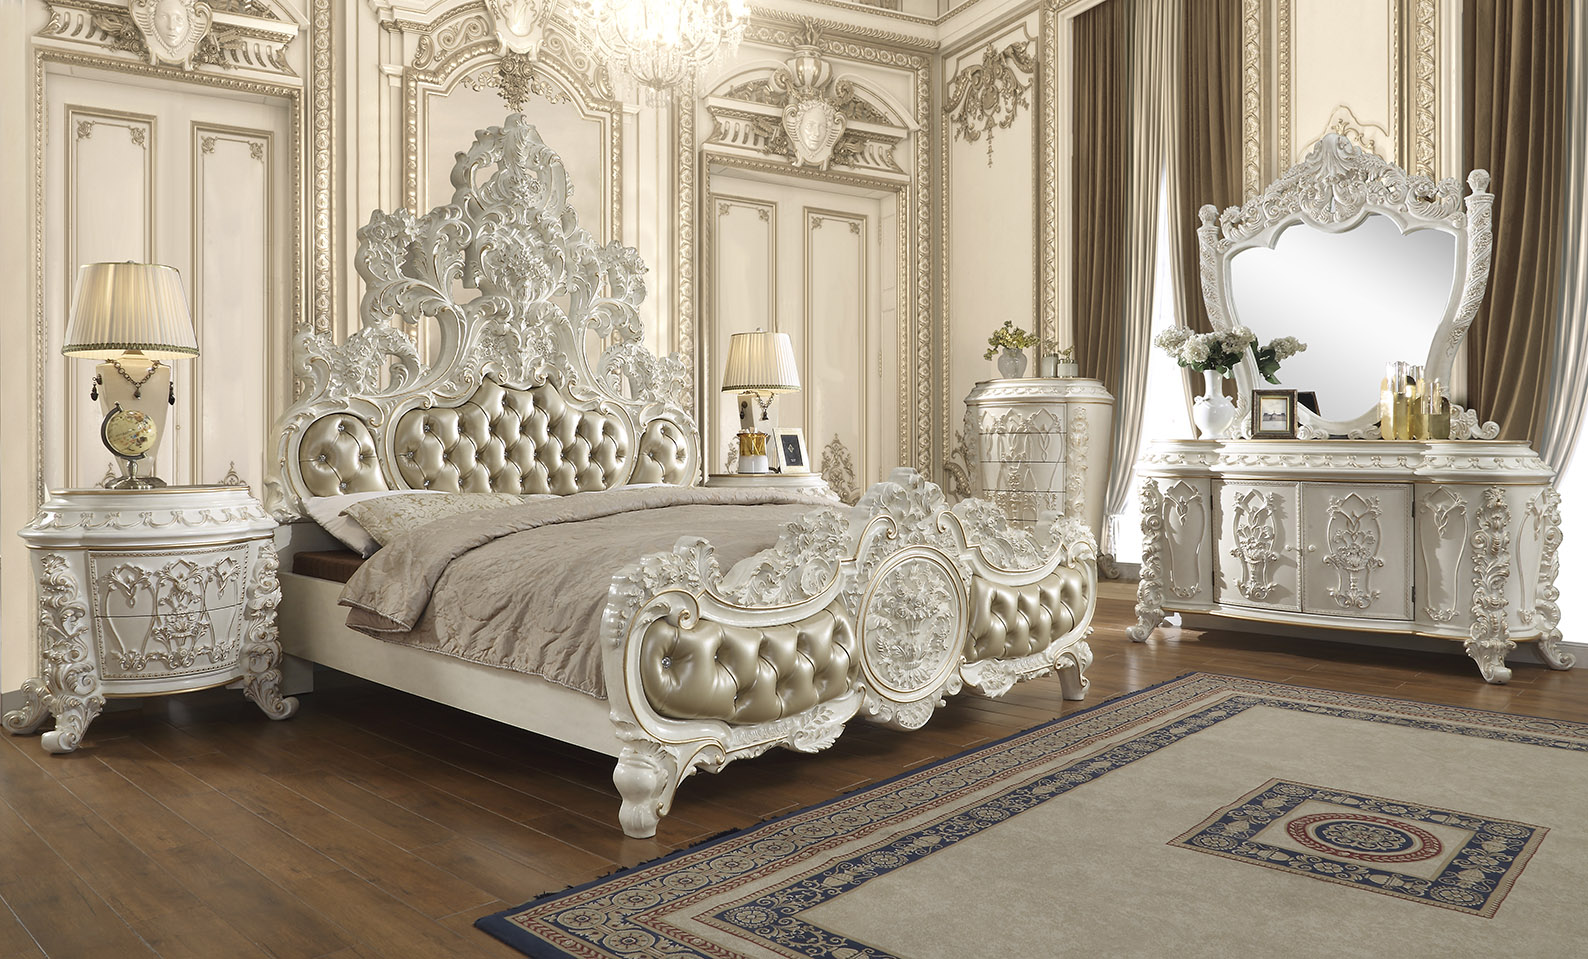 French Provincial Bedroom # 1806